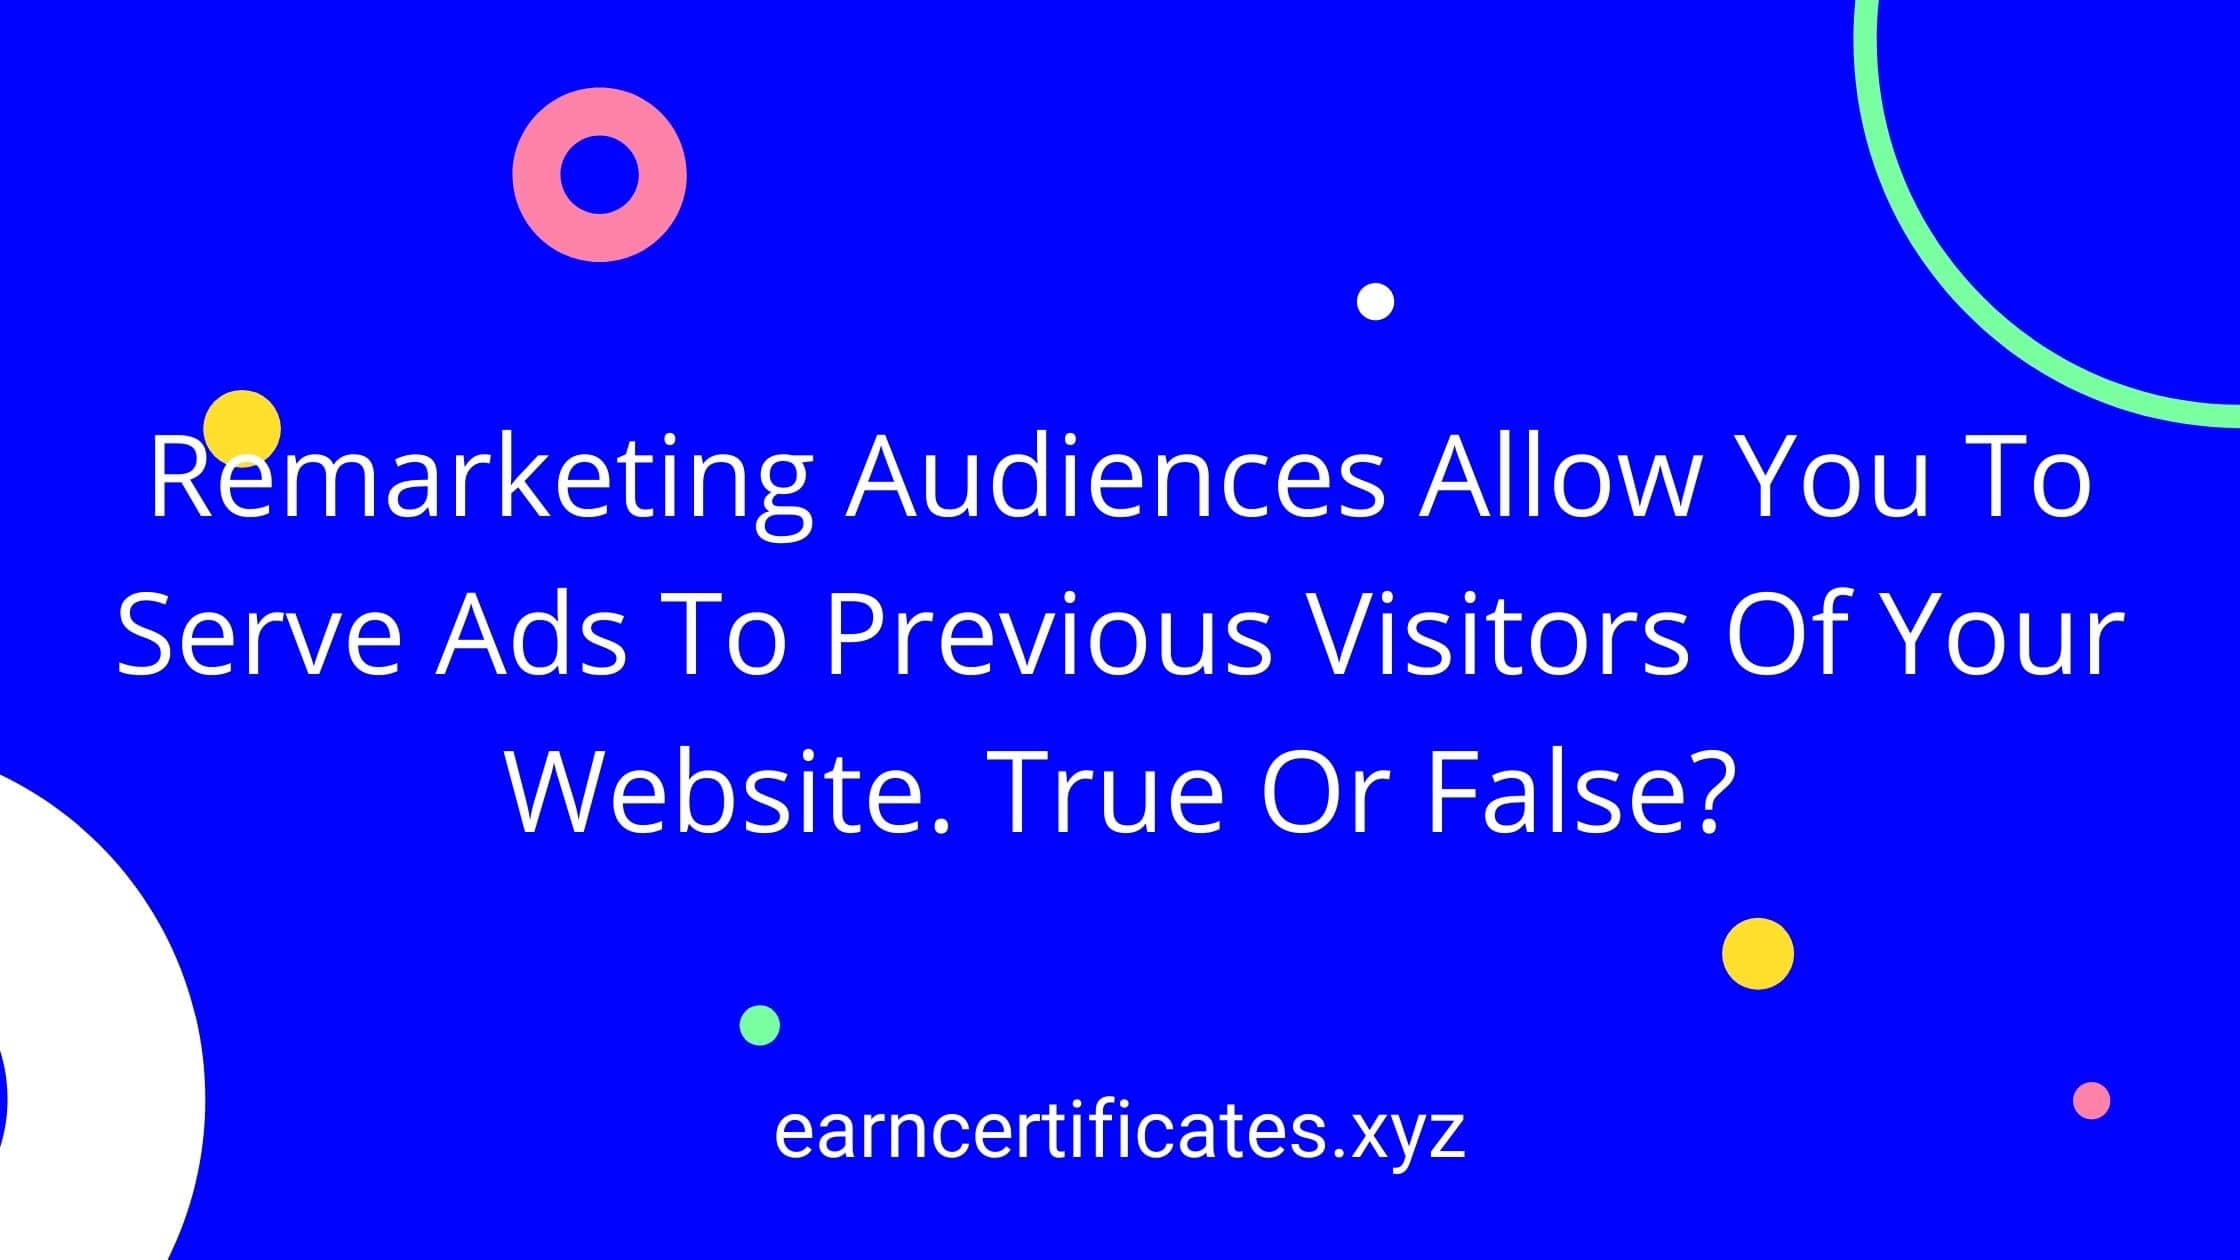 Remarketing Audiences Allow You To Serve Ads To Previous Visitors Of Your Website. True Or False?